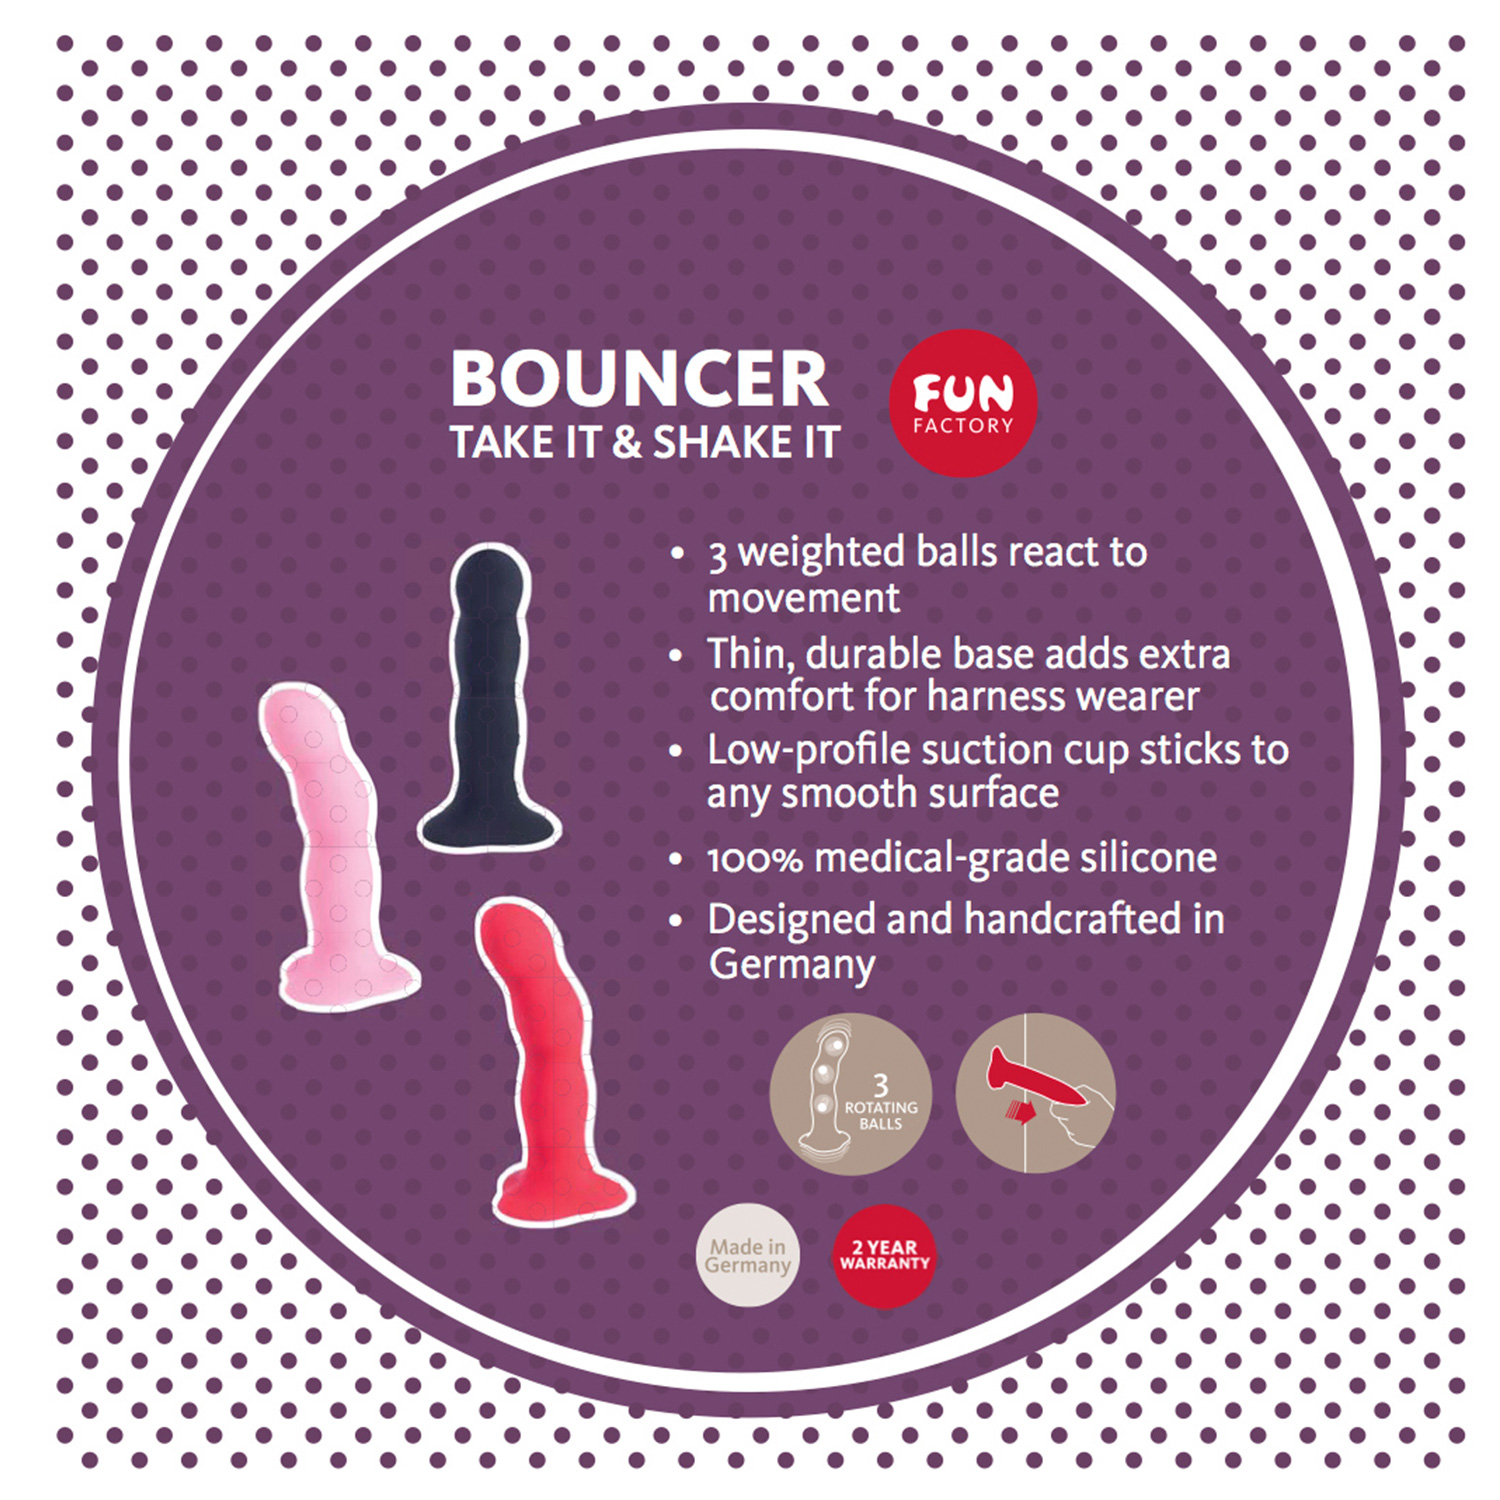 Fun Factory Bouncer Shakedildo